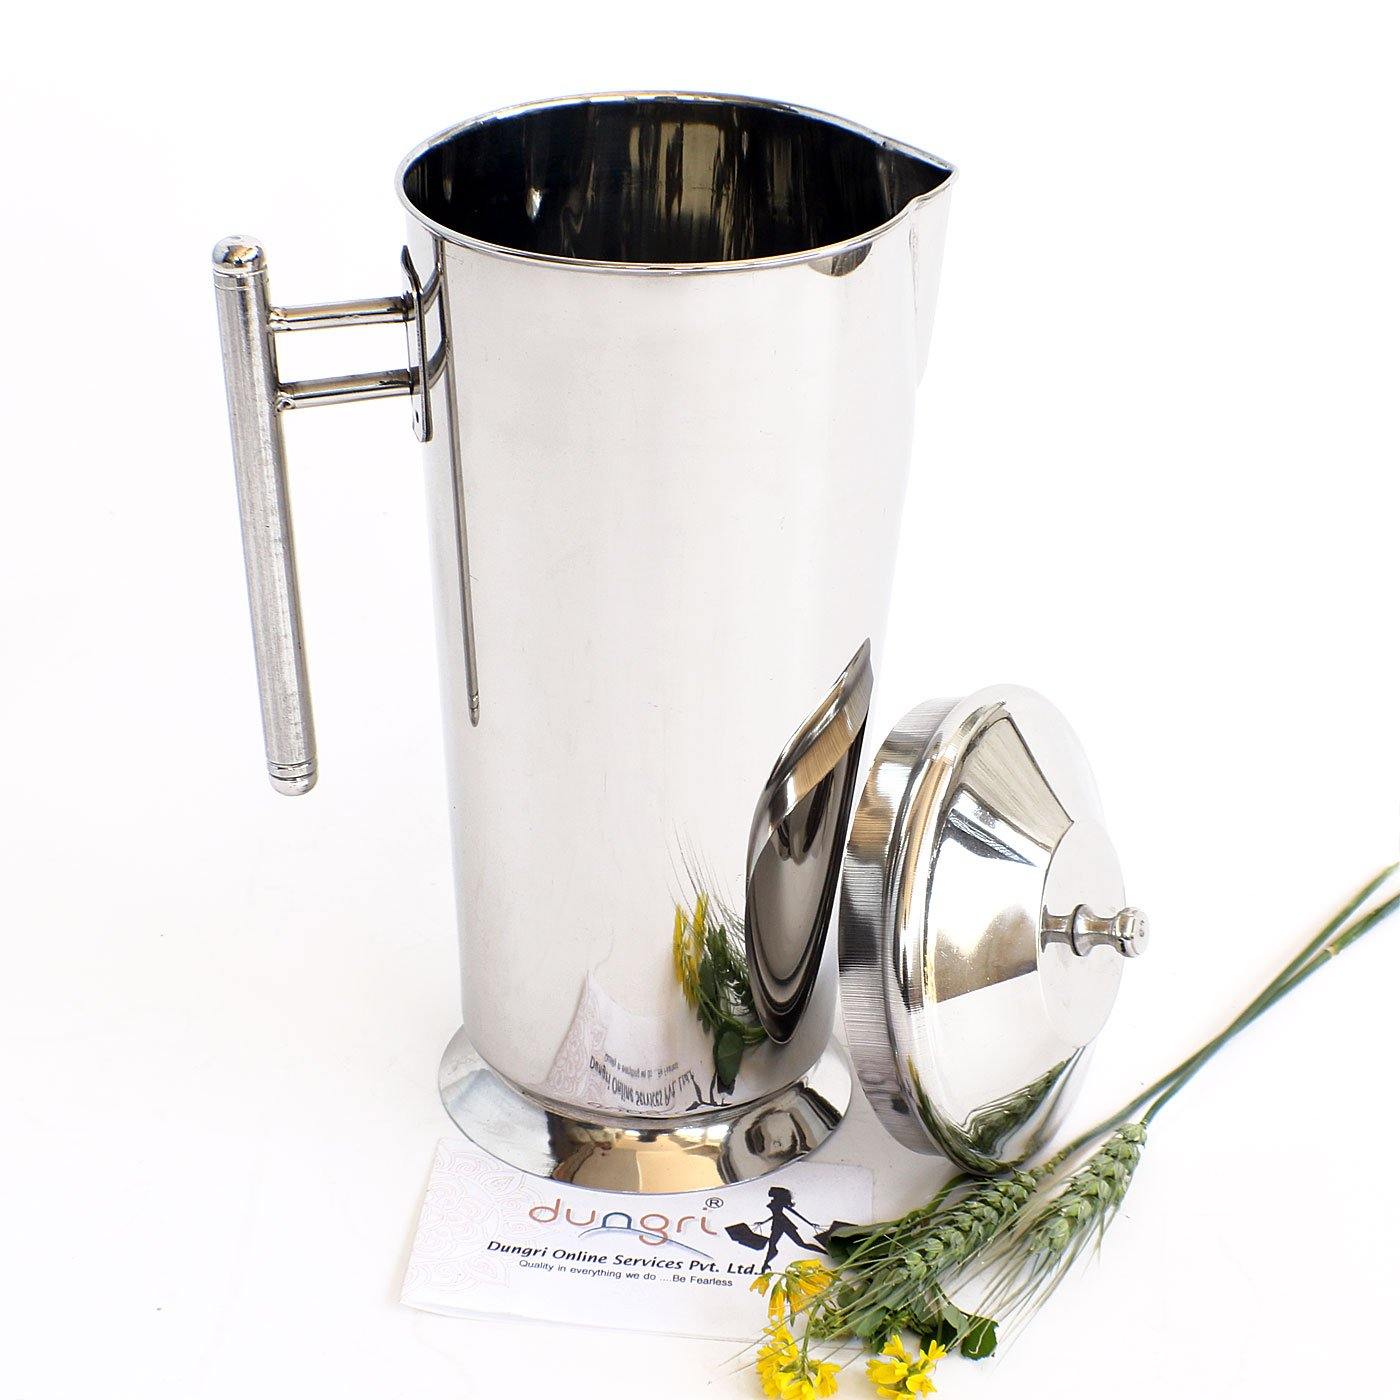 405feb657db Get Quotations · Dungri Pure Handmade Stainless Steel Water Pitcher Jug  1700 ML with Lid -Water Pot Ice